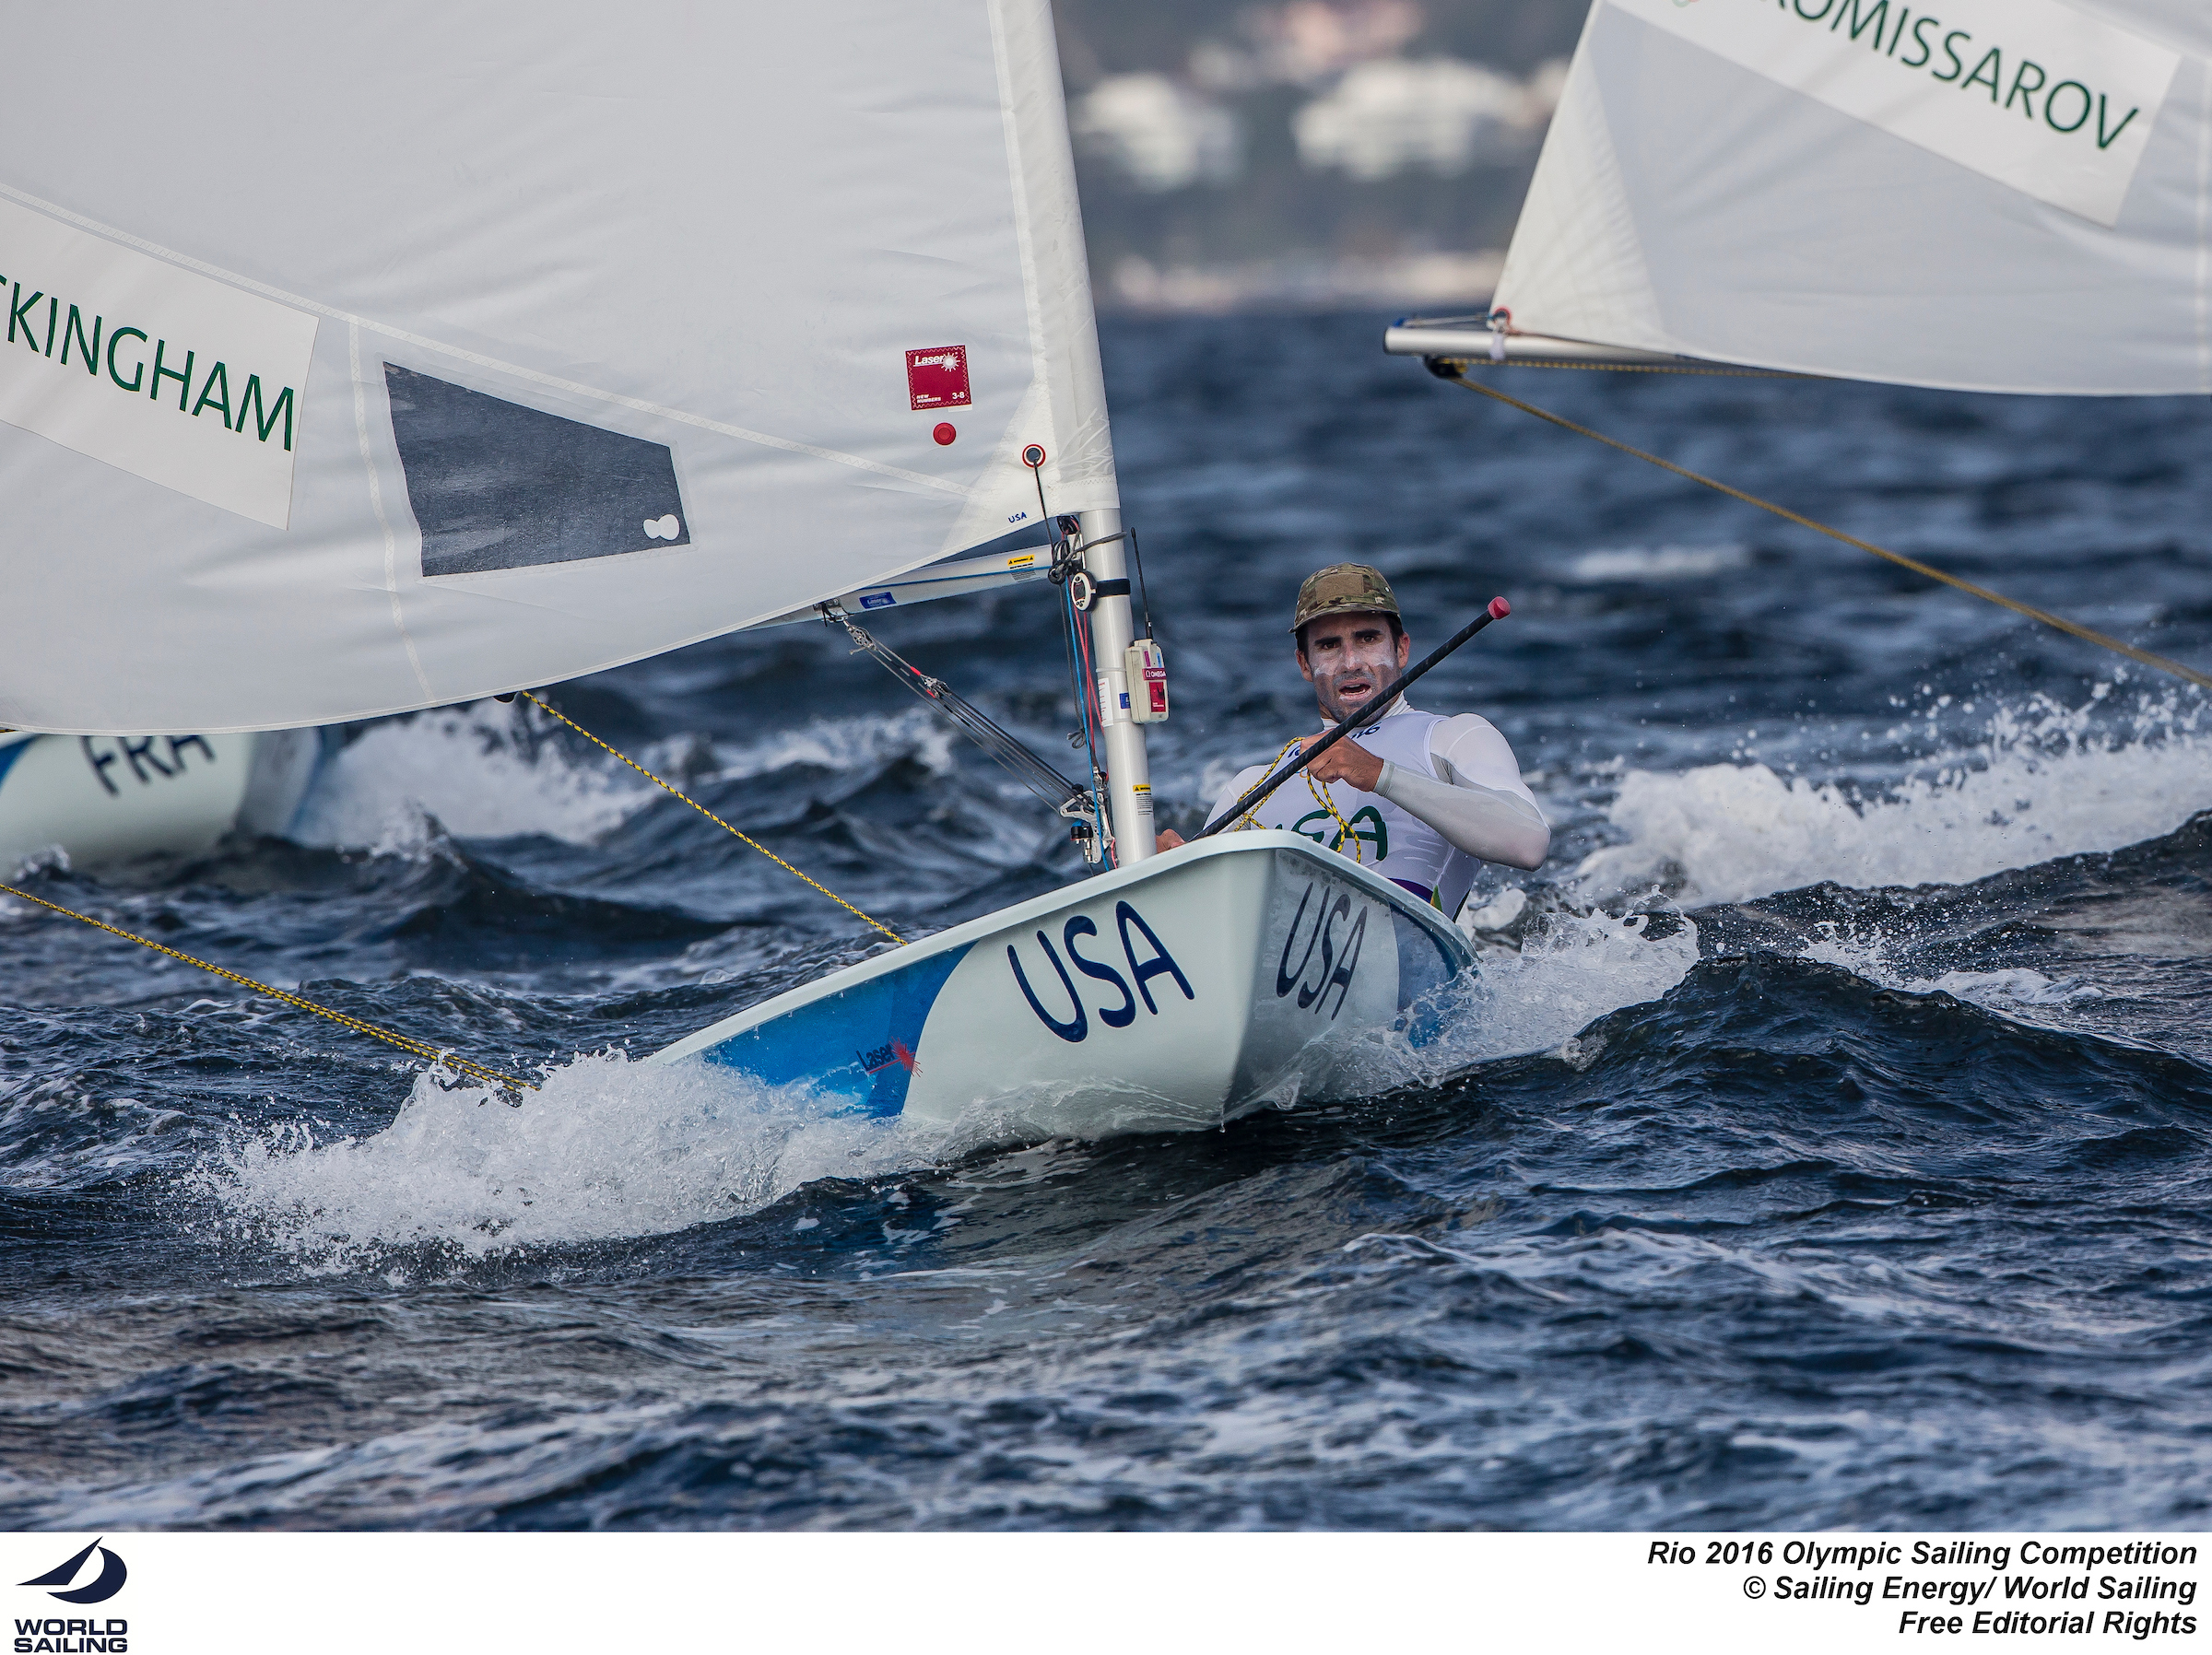 Charlie Buckingham (Photo courtesy of US Sailing)